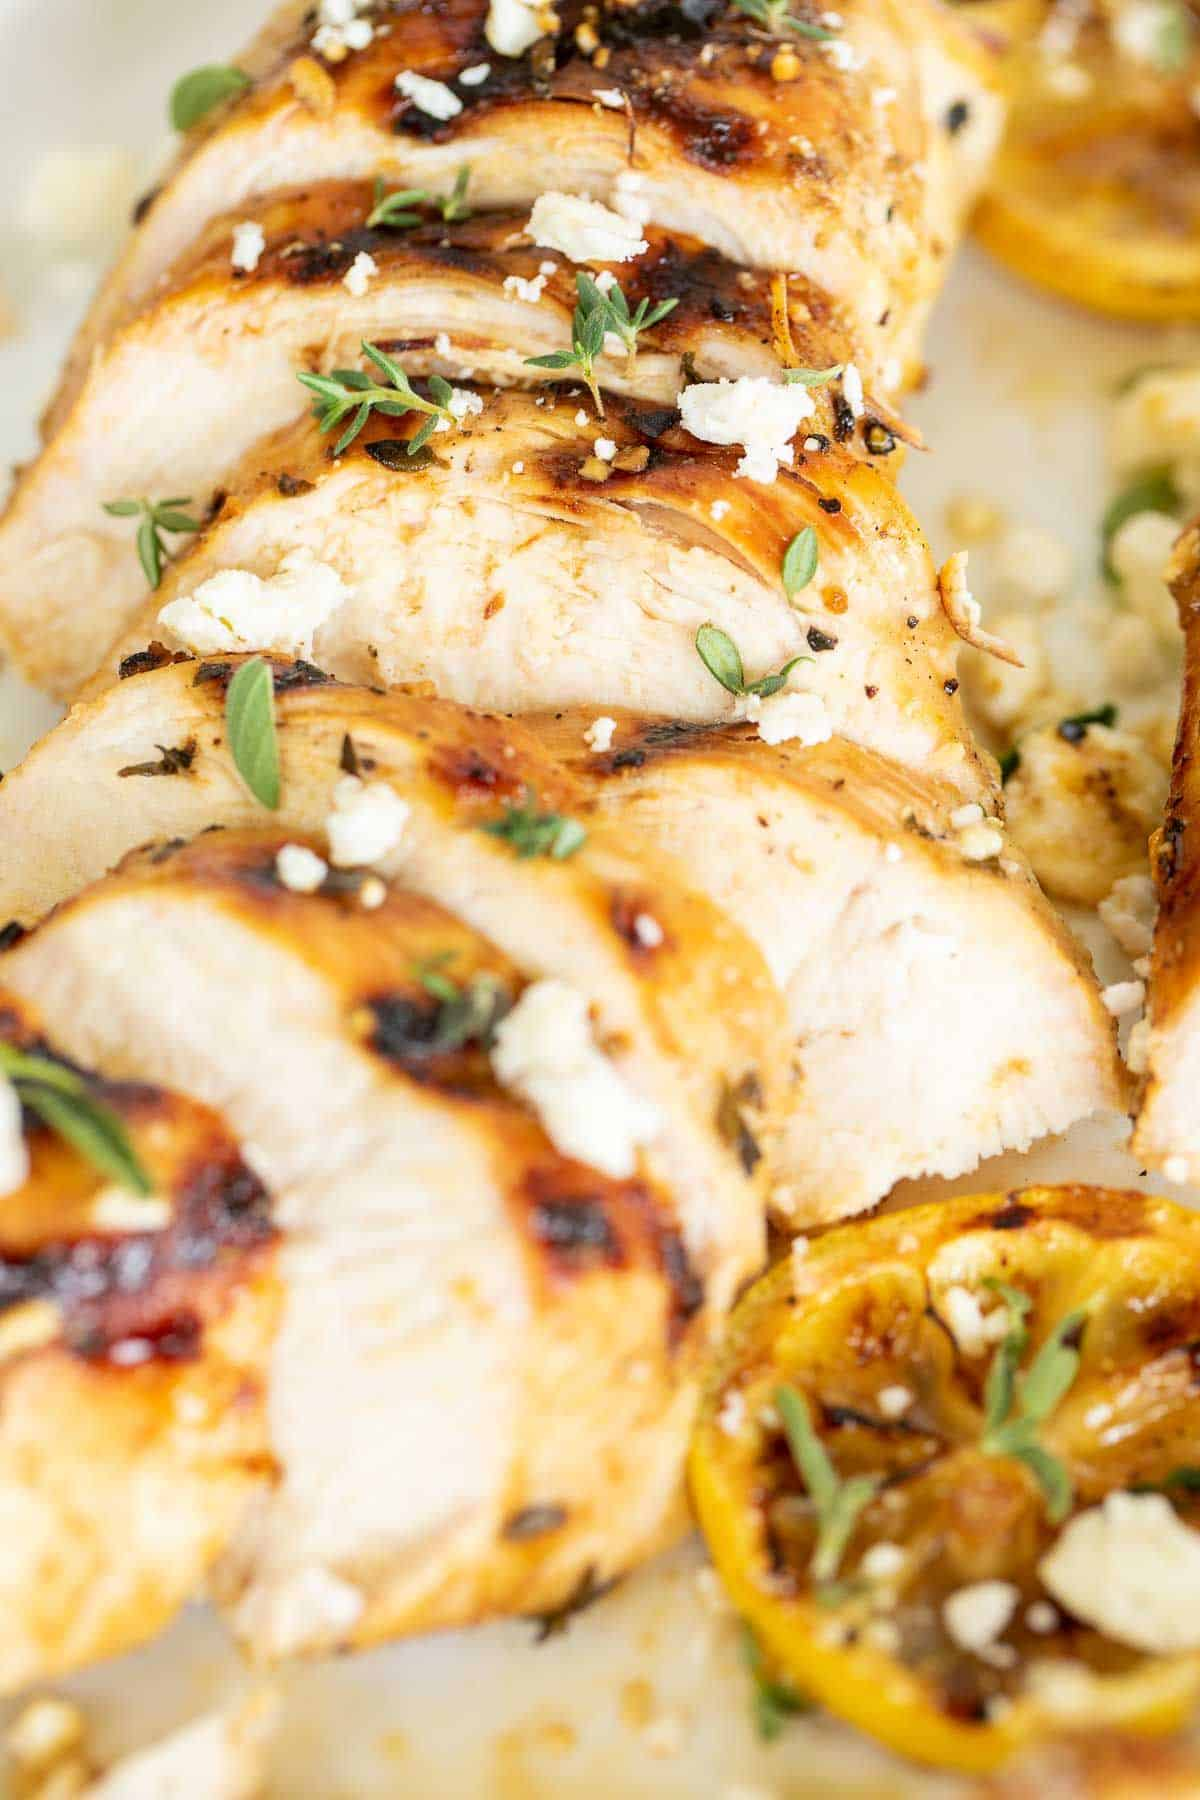 Slices of Greek marinated chicken on a white surface, grilled.